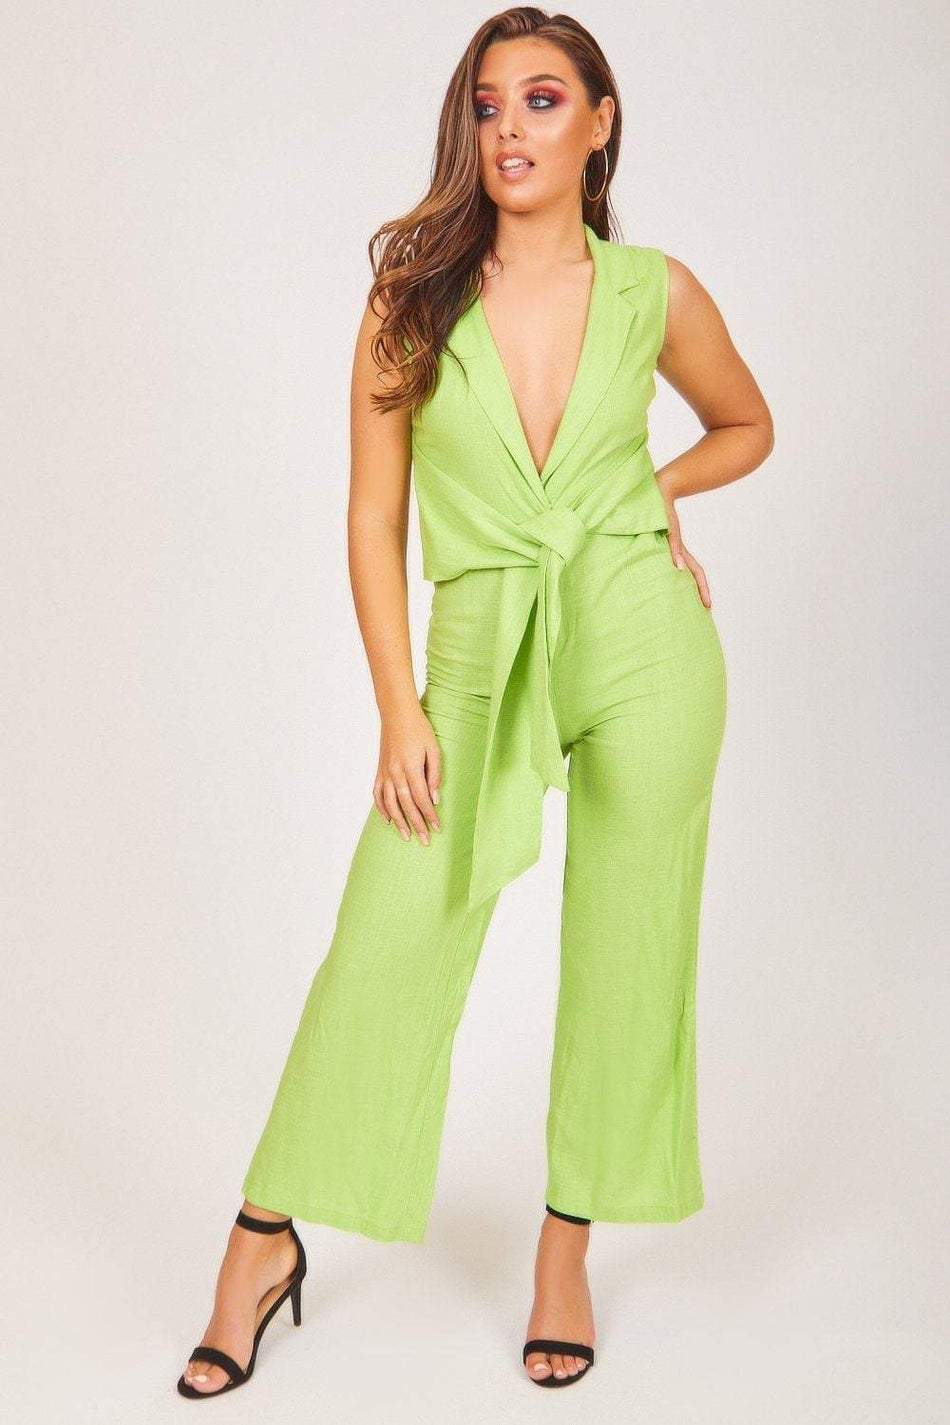 Green Tie Front Sleeveless Jumpsuit - KATCH ME